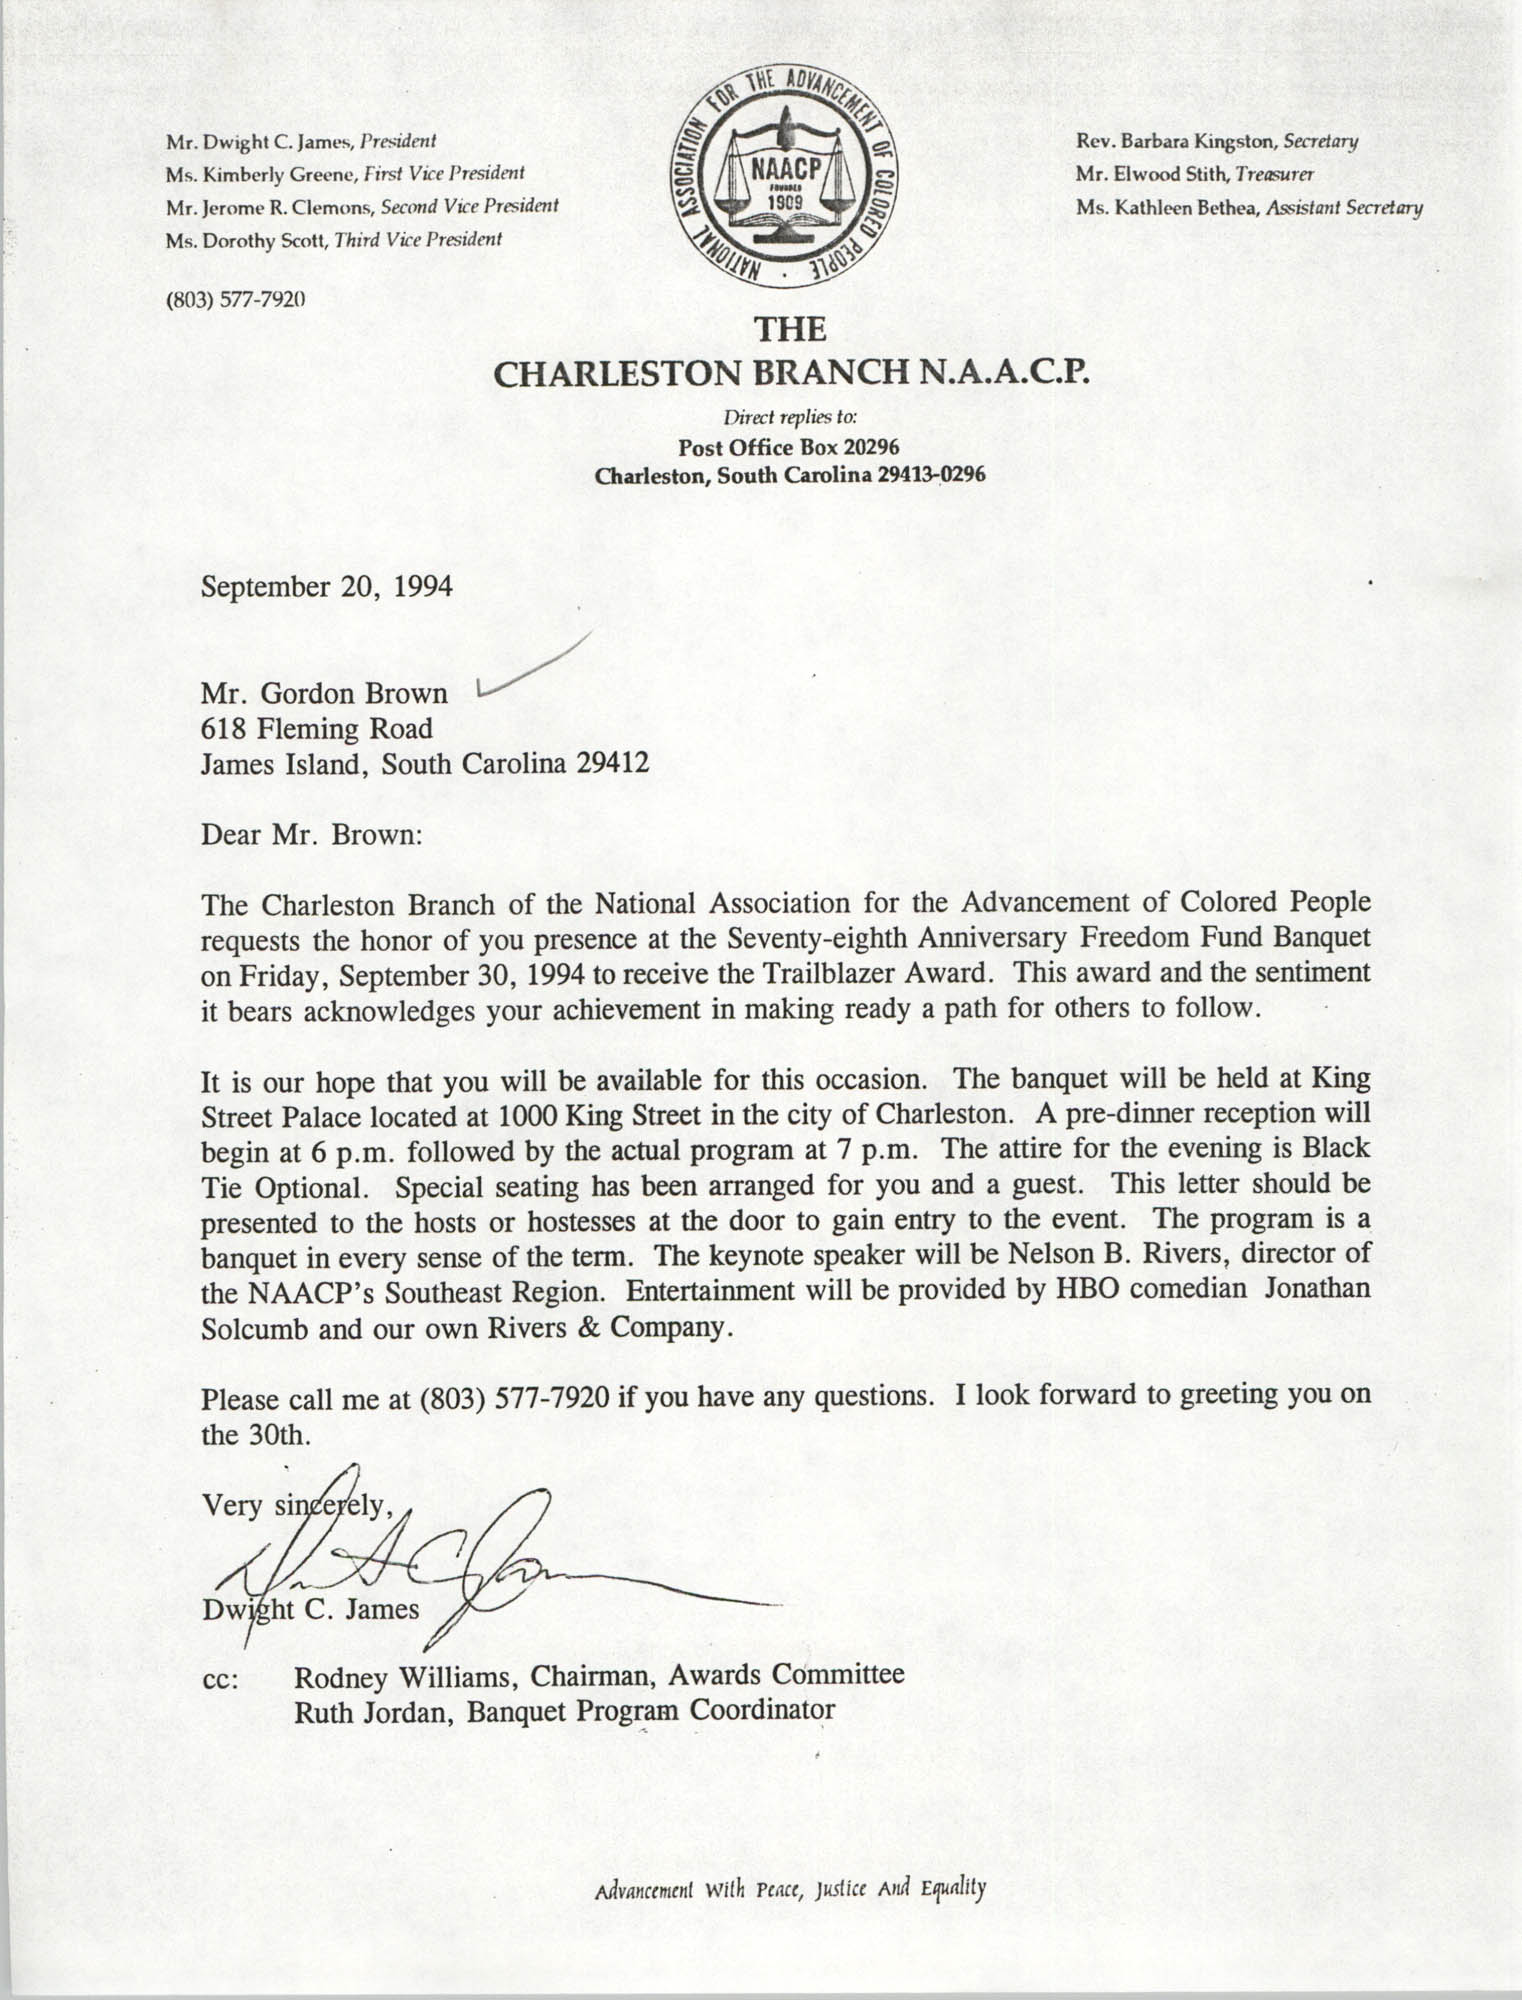 Letter from Dwight C. James to Gordon Brown, September 20, 1994